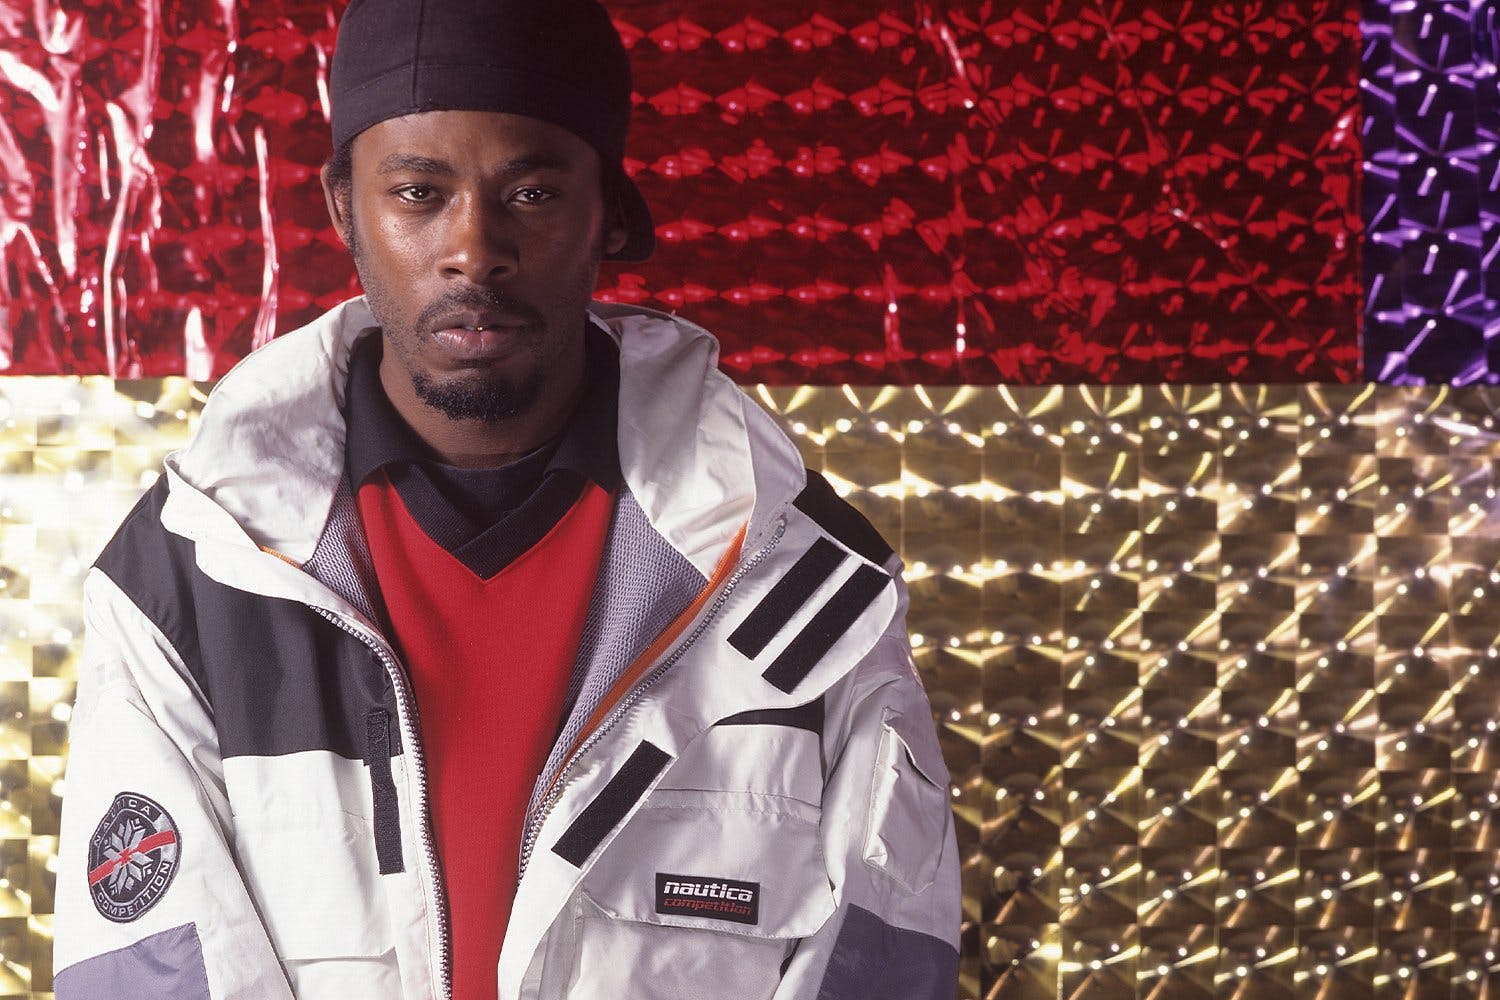 American rap artist GZA of the rap group Wu-Tang Clan poses for a April 1997 portrait in New York City, New York. (Photo by Bob Berg/Getty Images)